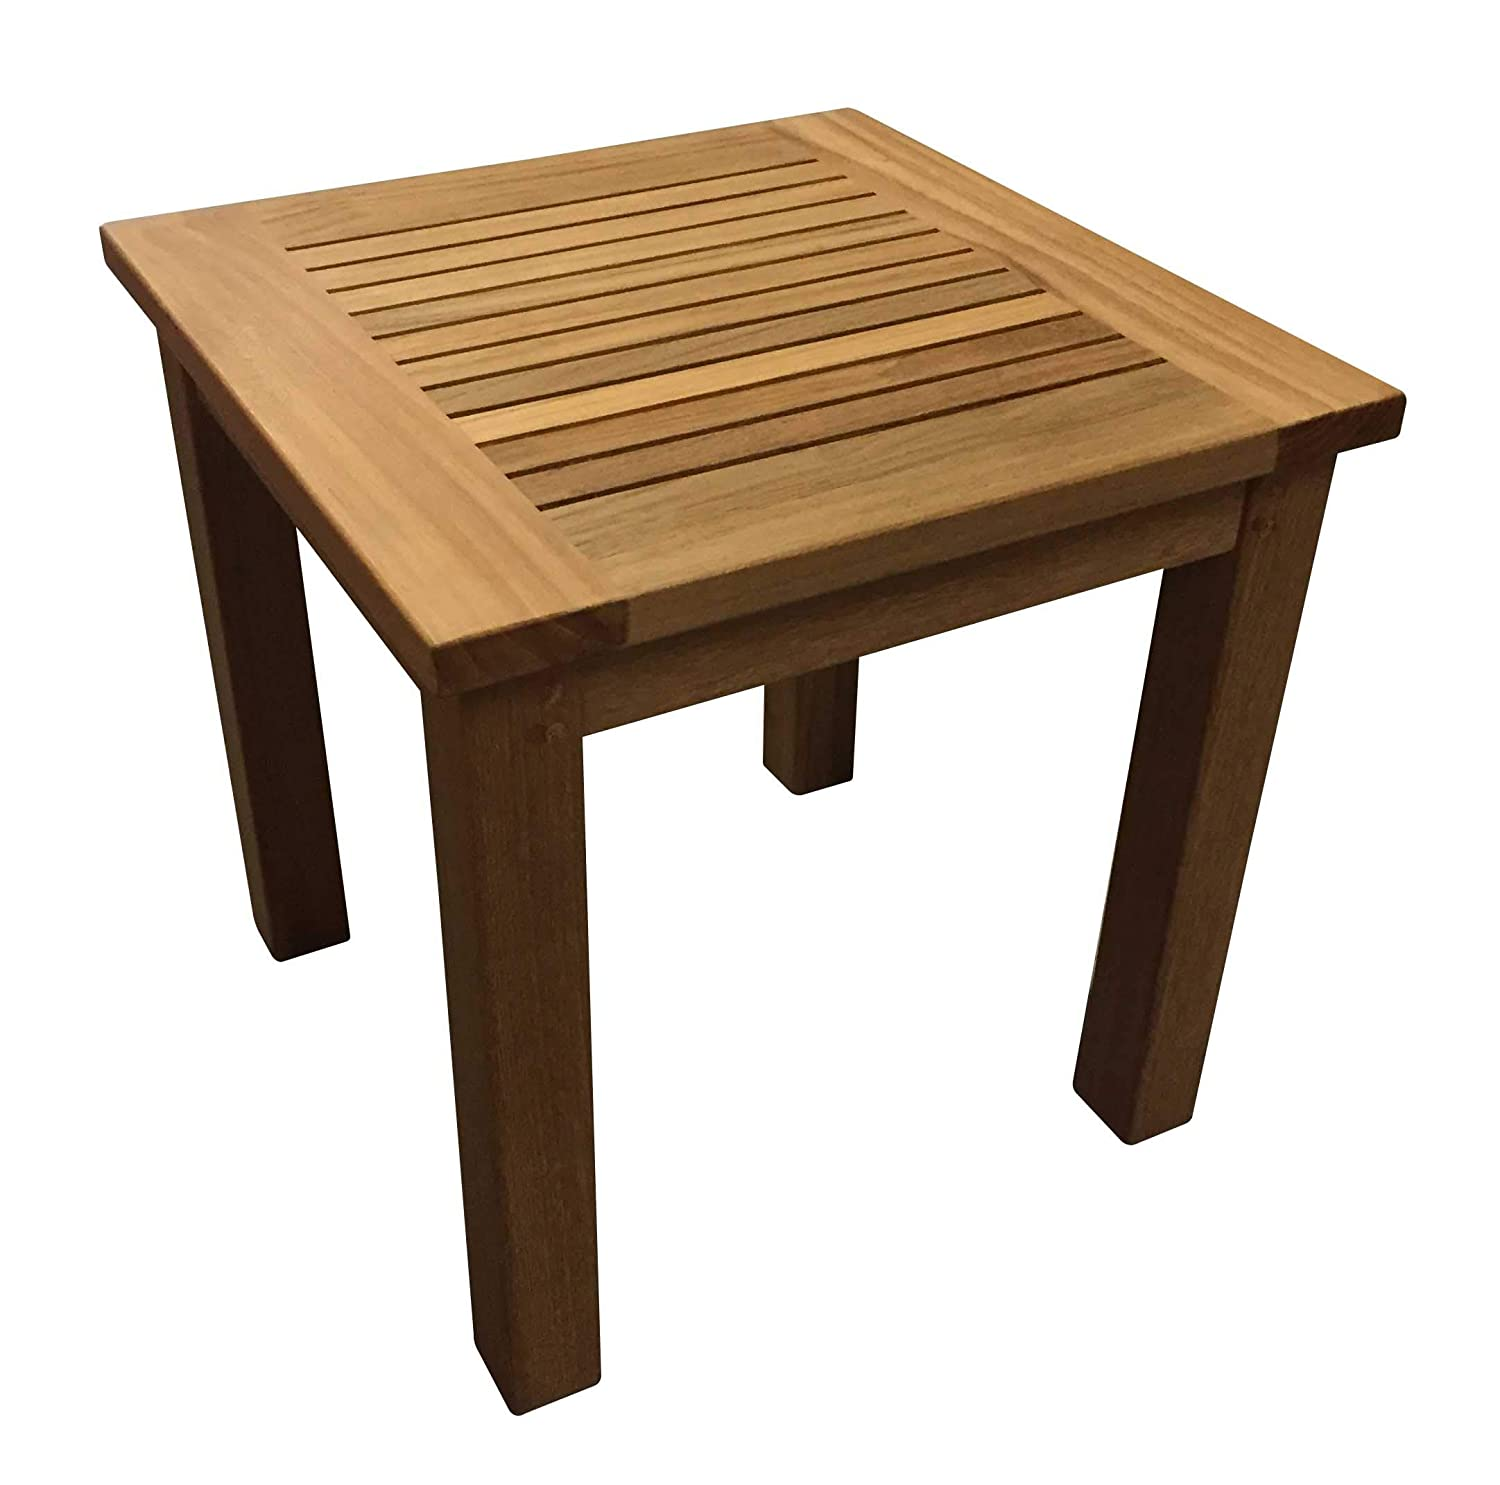 Atlanta Teak Furniture – Teak Side Table – 17 Square